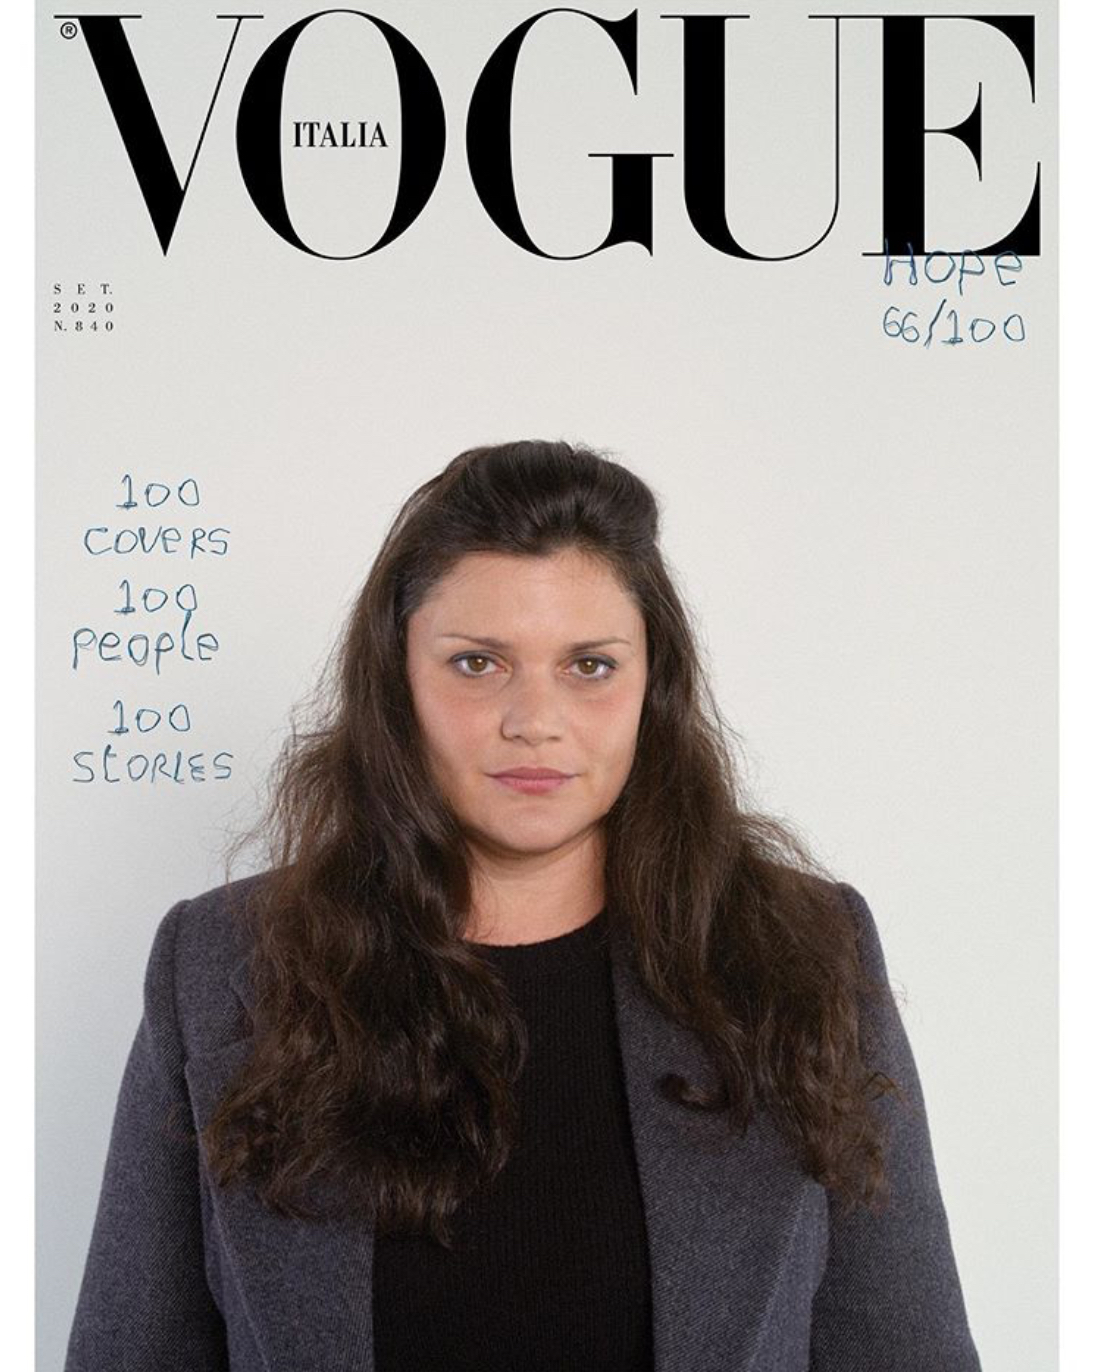 Vogue Italia cover featuring Diana Al-Hadid